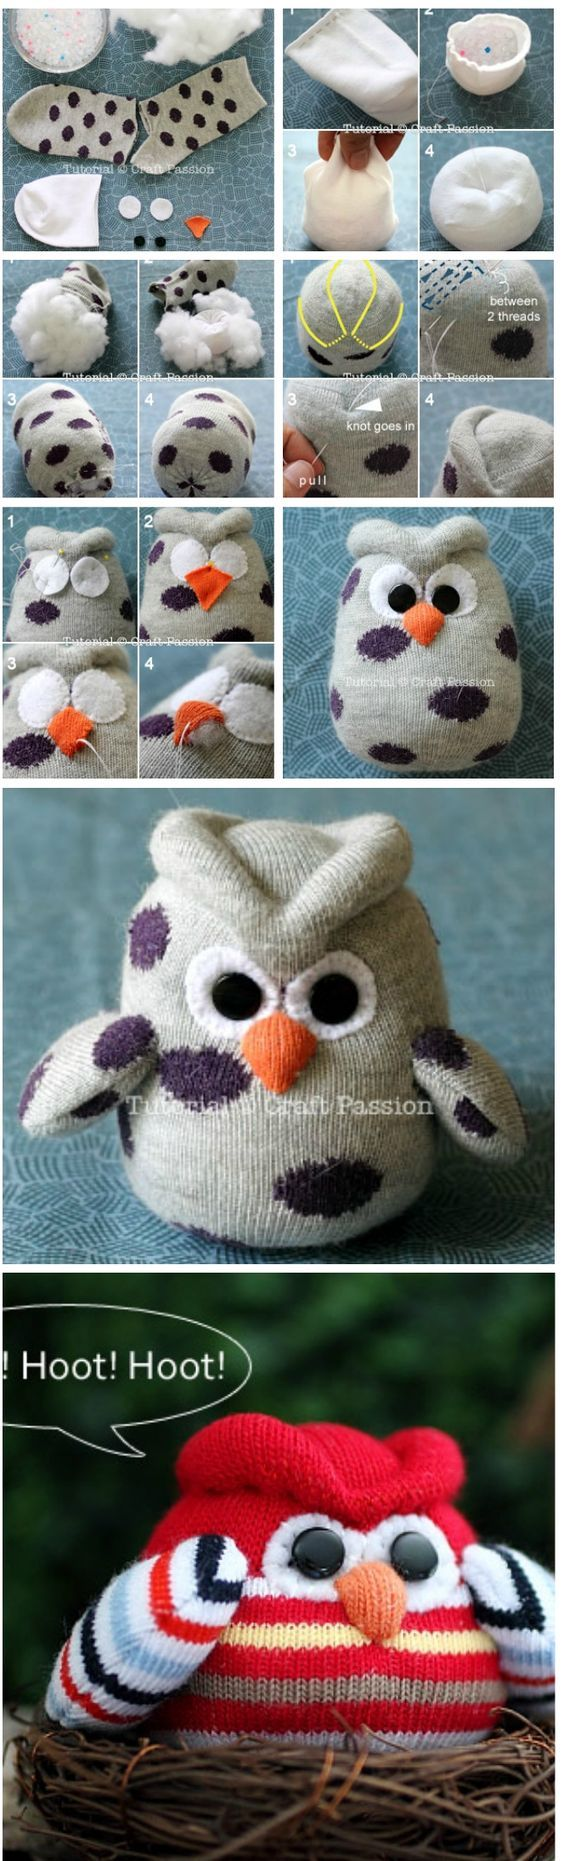 Sock Owl Craft With Easy To Follow Video | The WHOot